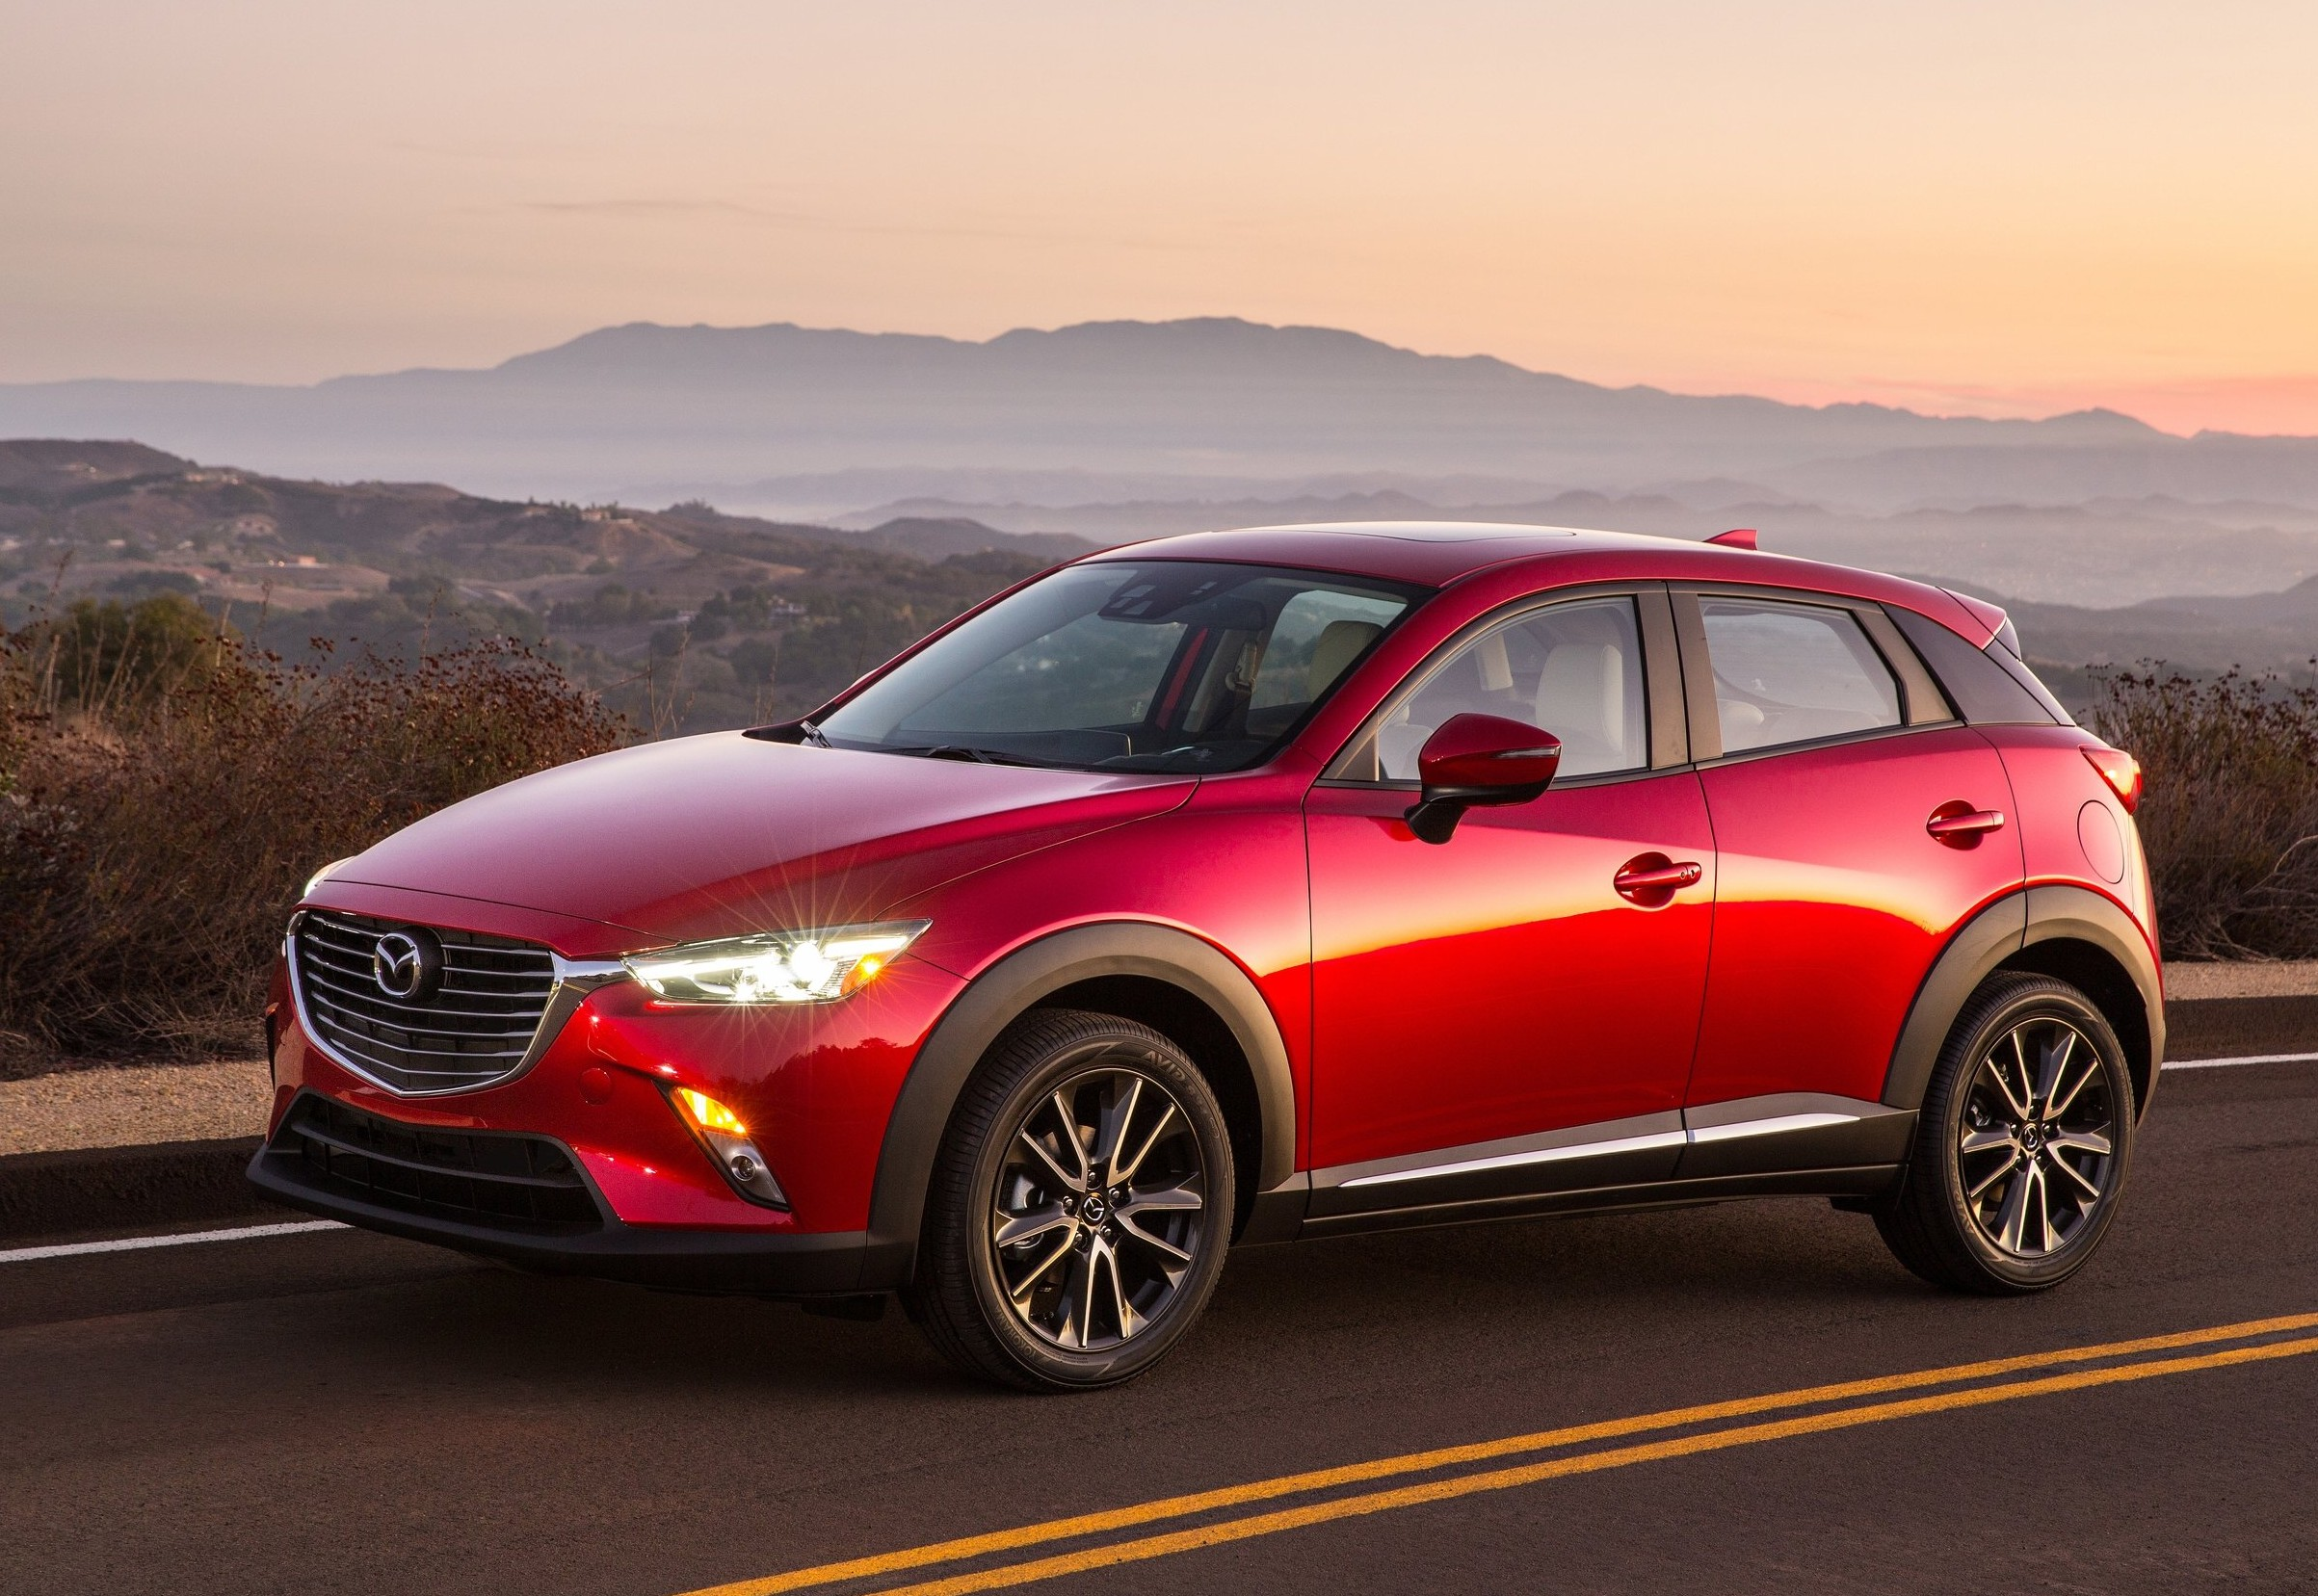 Mazda Design Contest CX-3